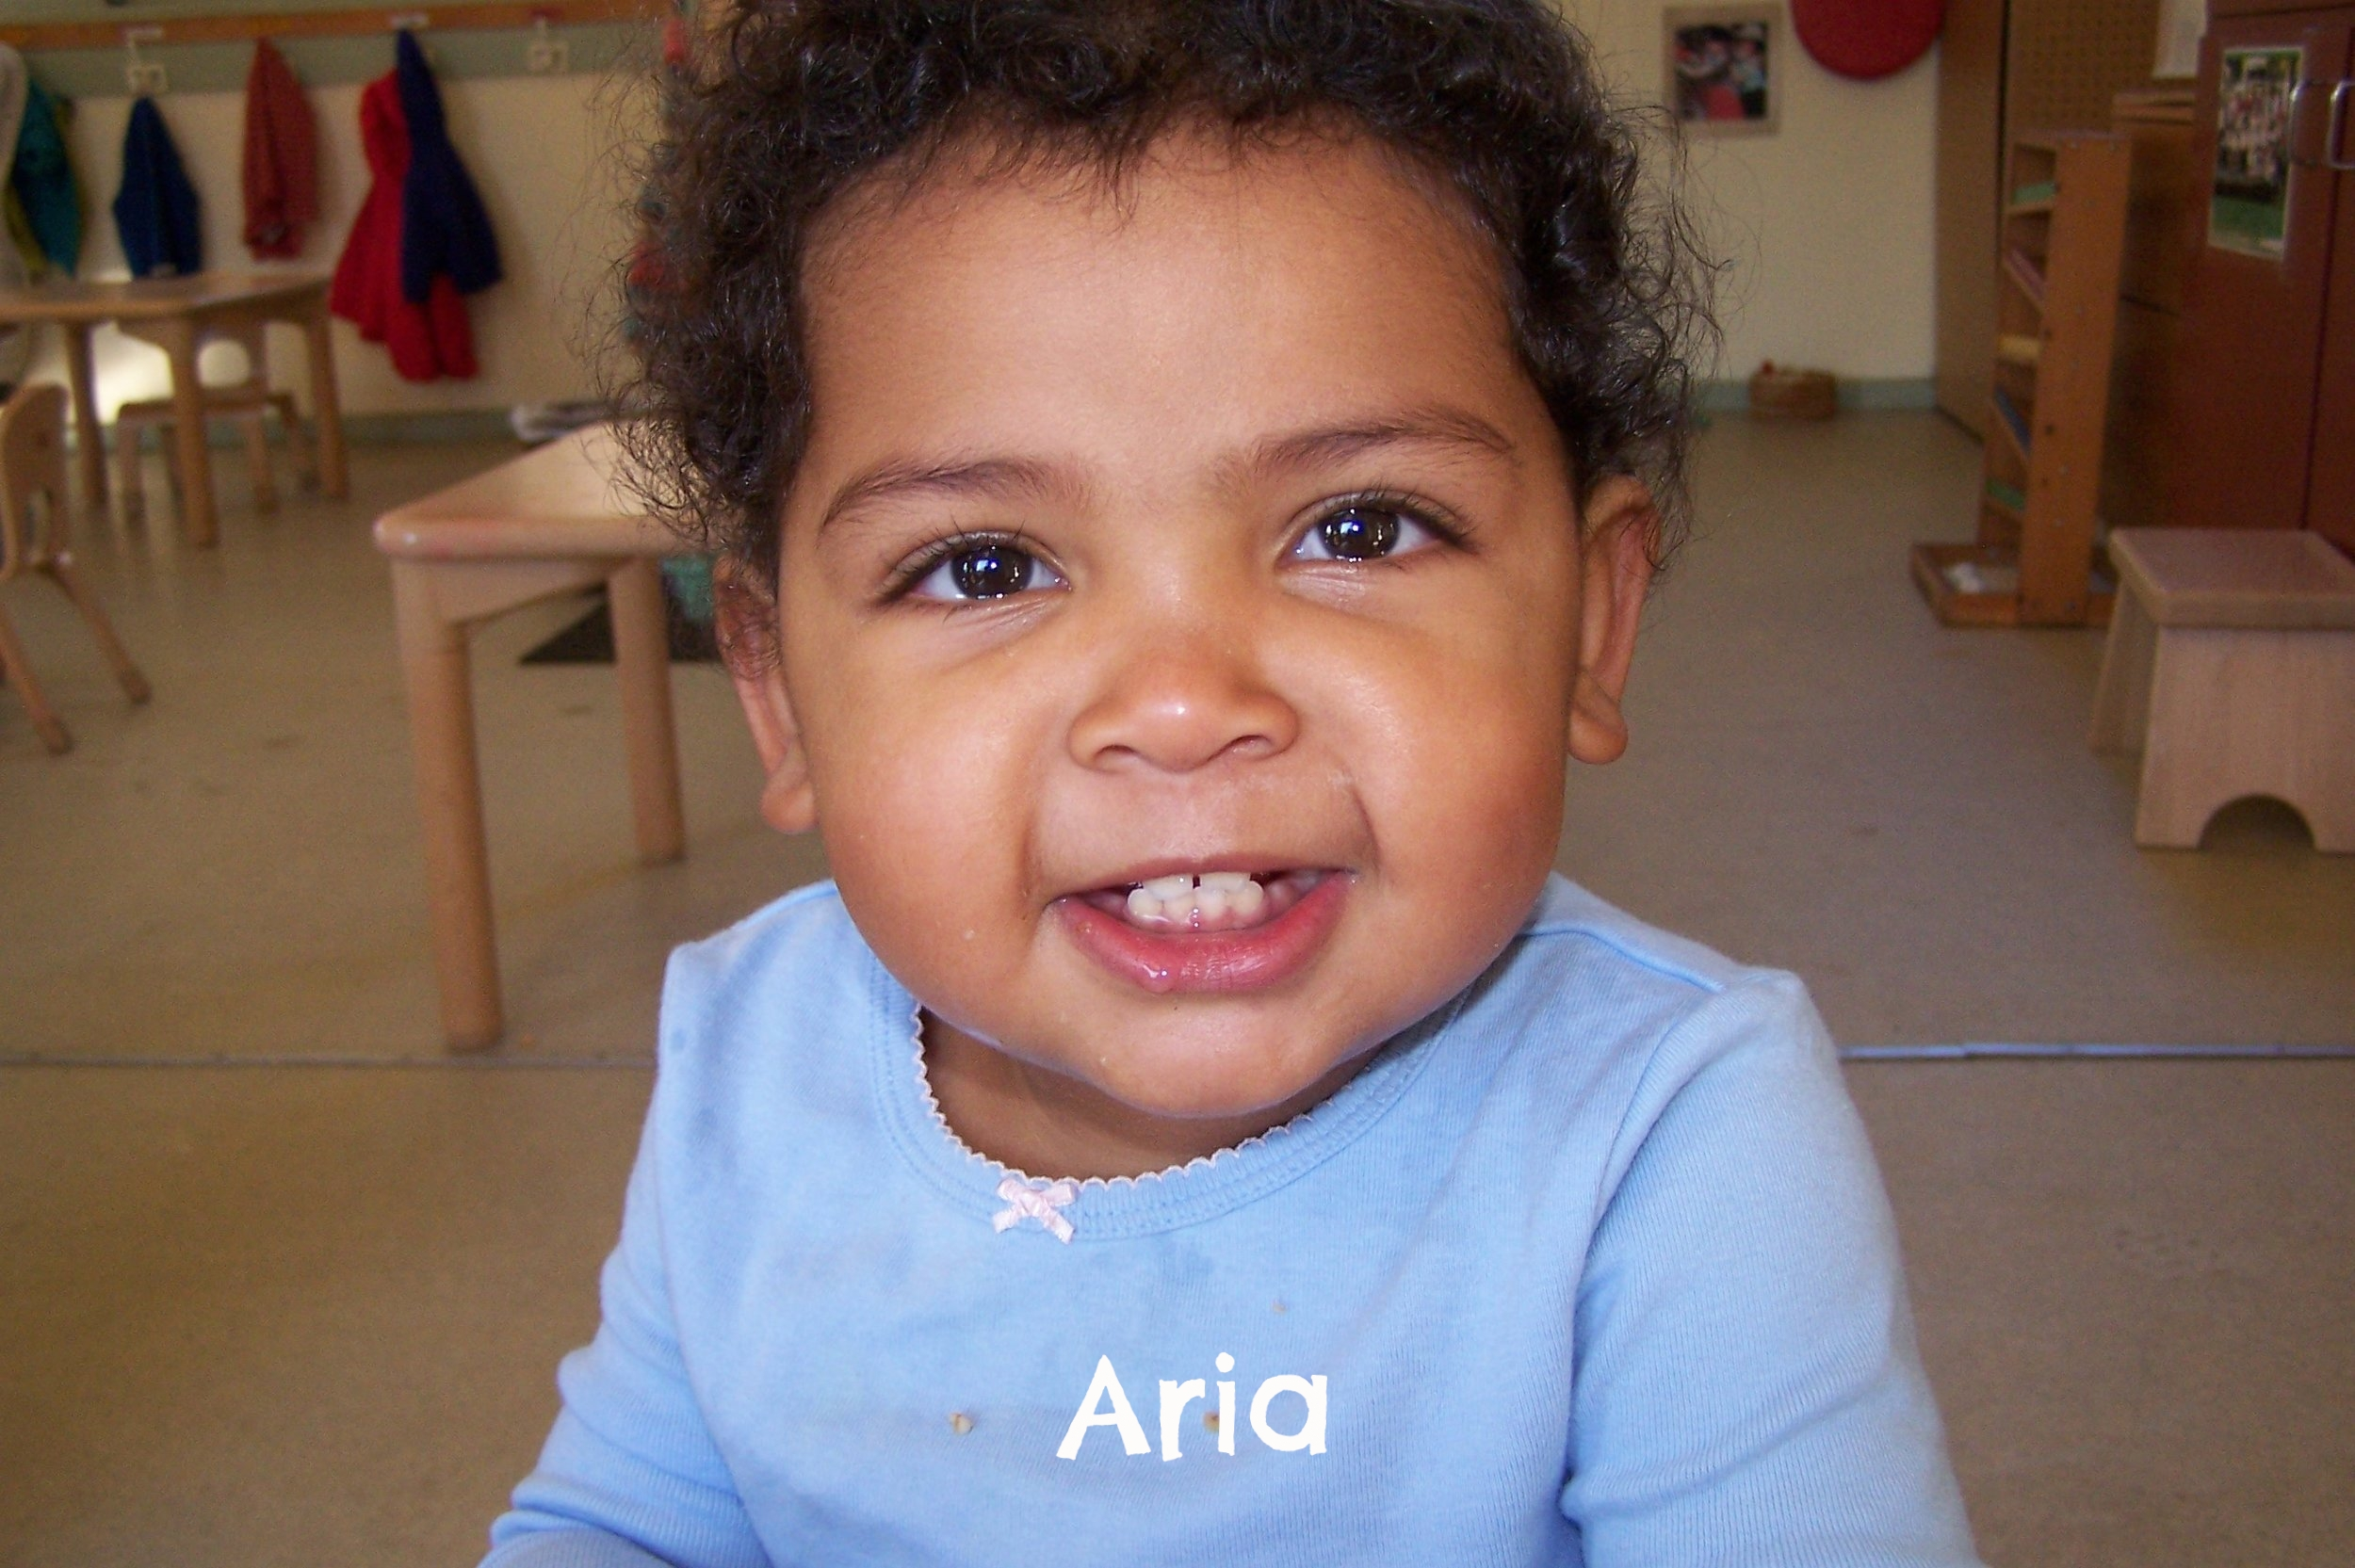 toddler teeth aria copy.jpeg